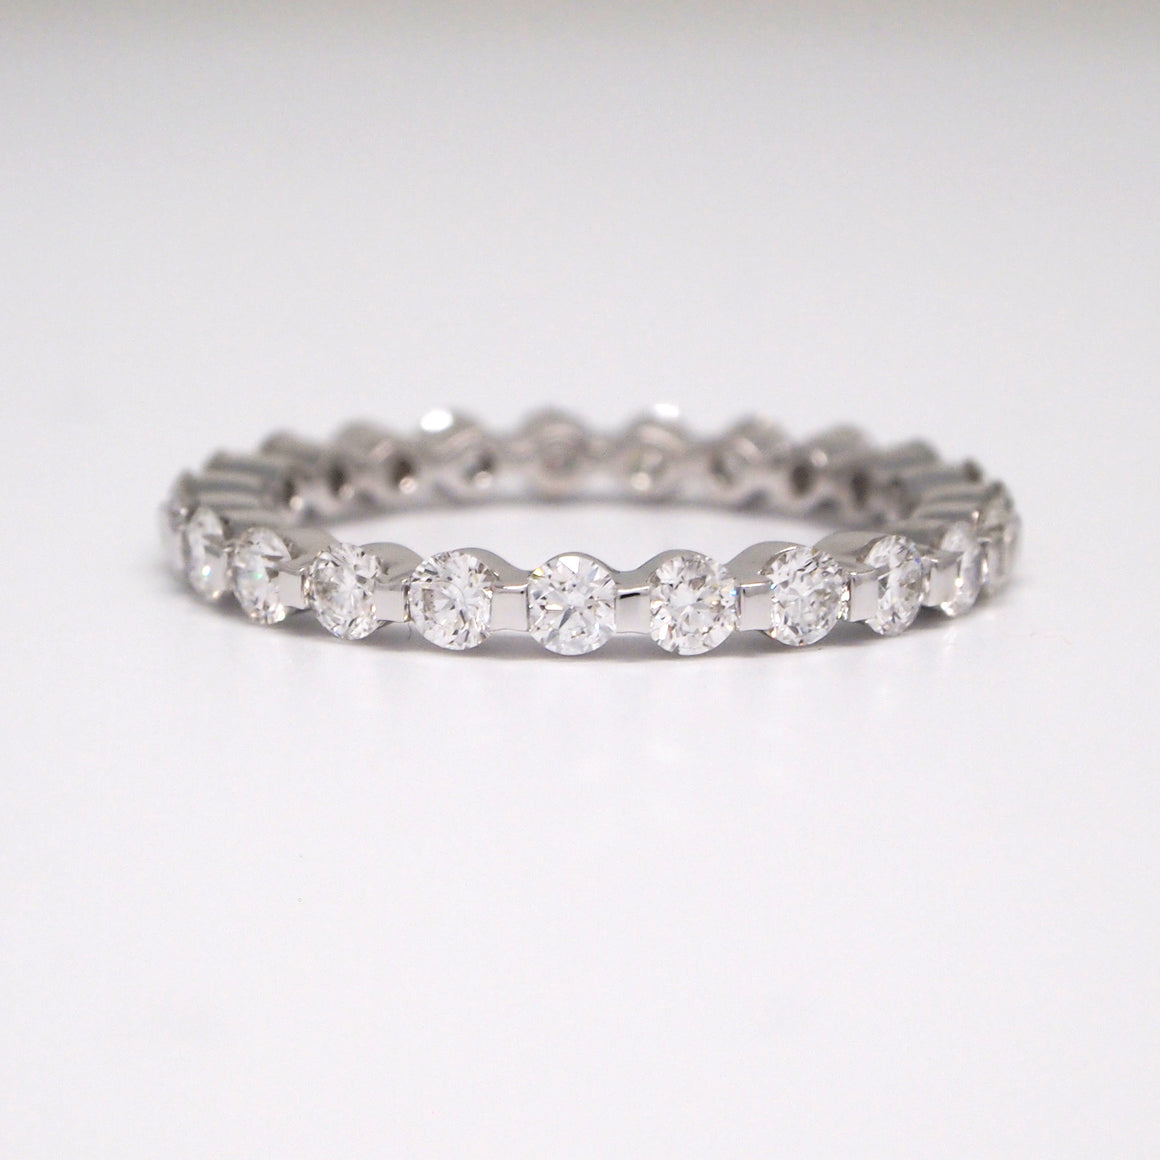 18k white gold diamond eternity band set with 23 round brilliant diamonds weighing a total of 1.30 carats.